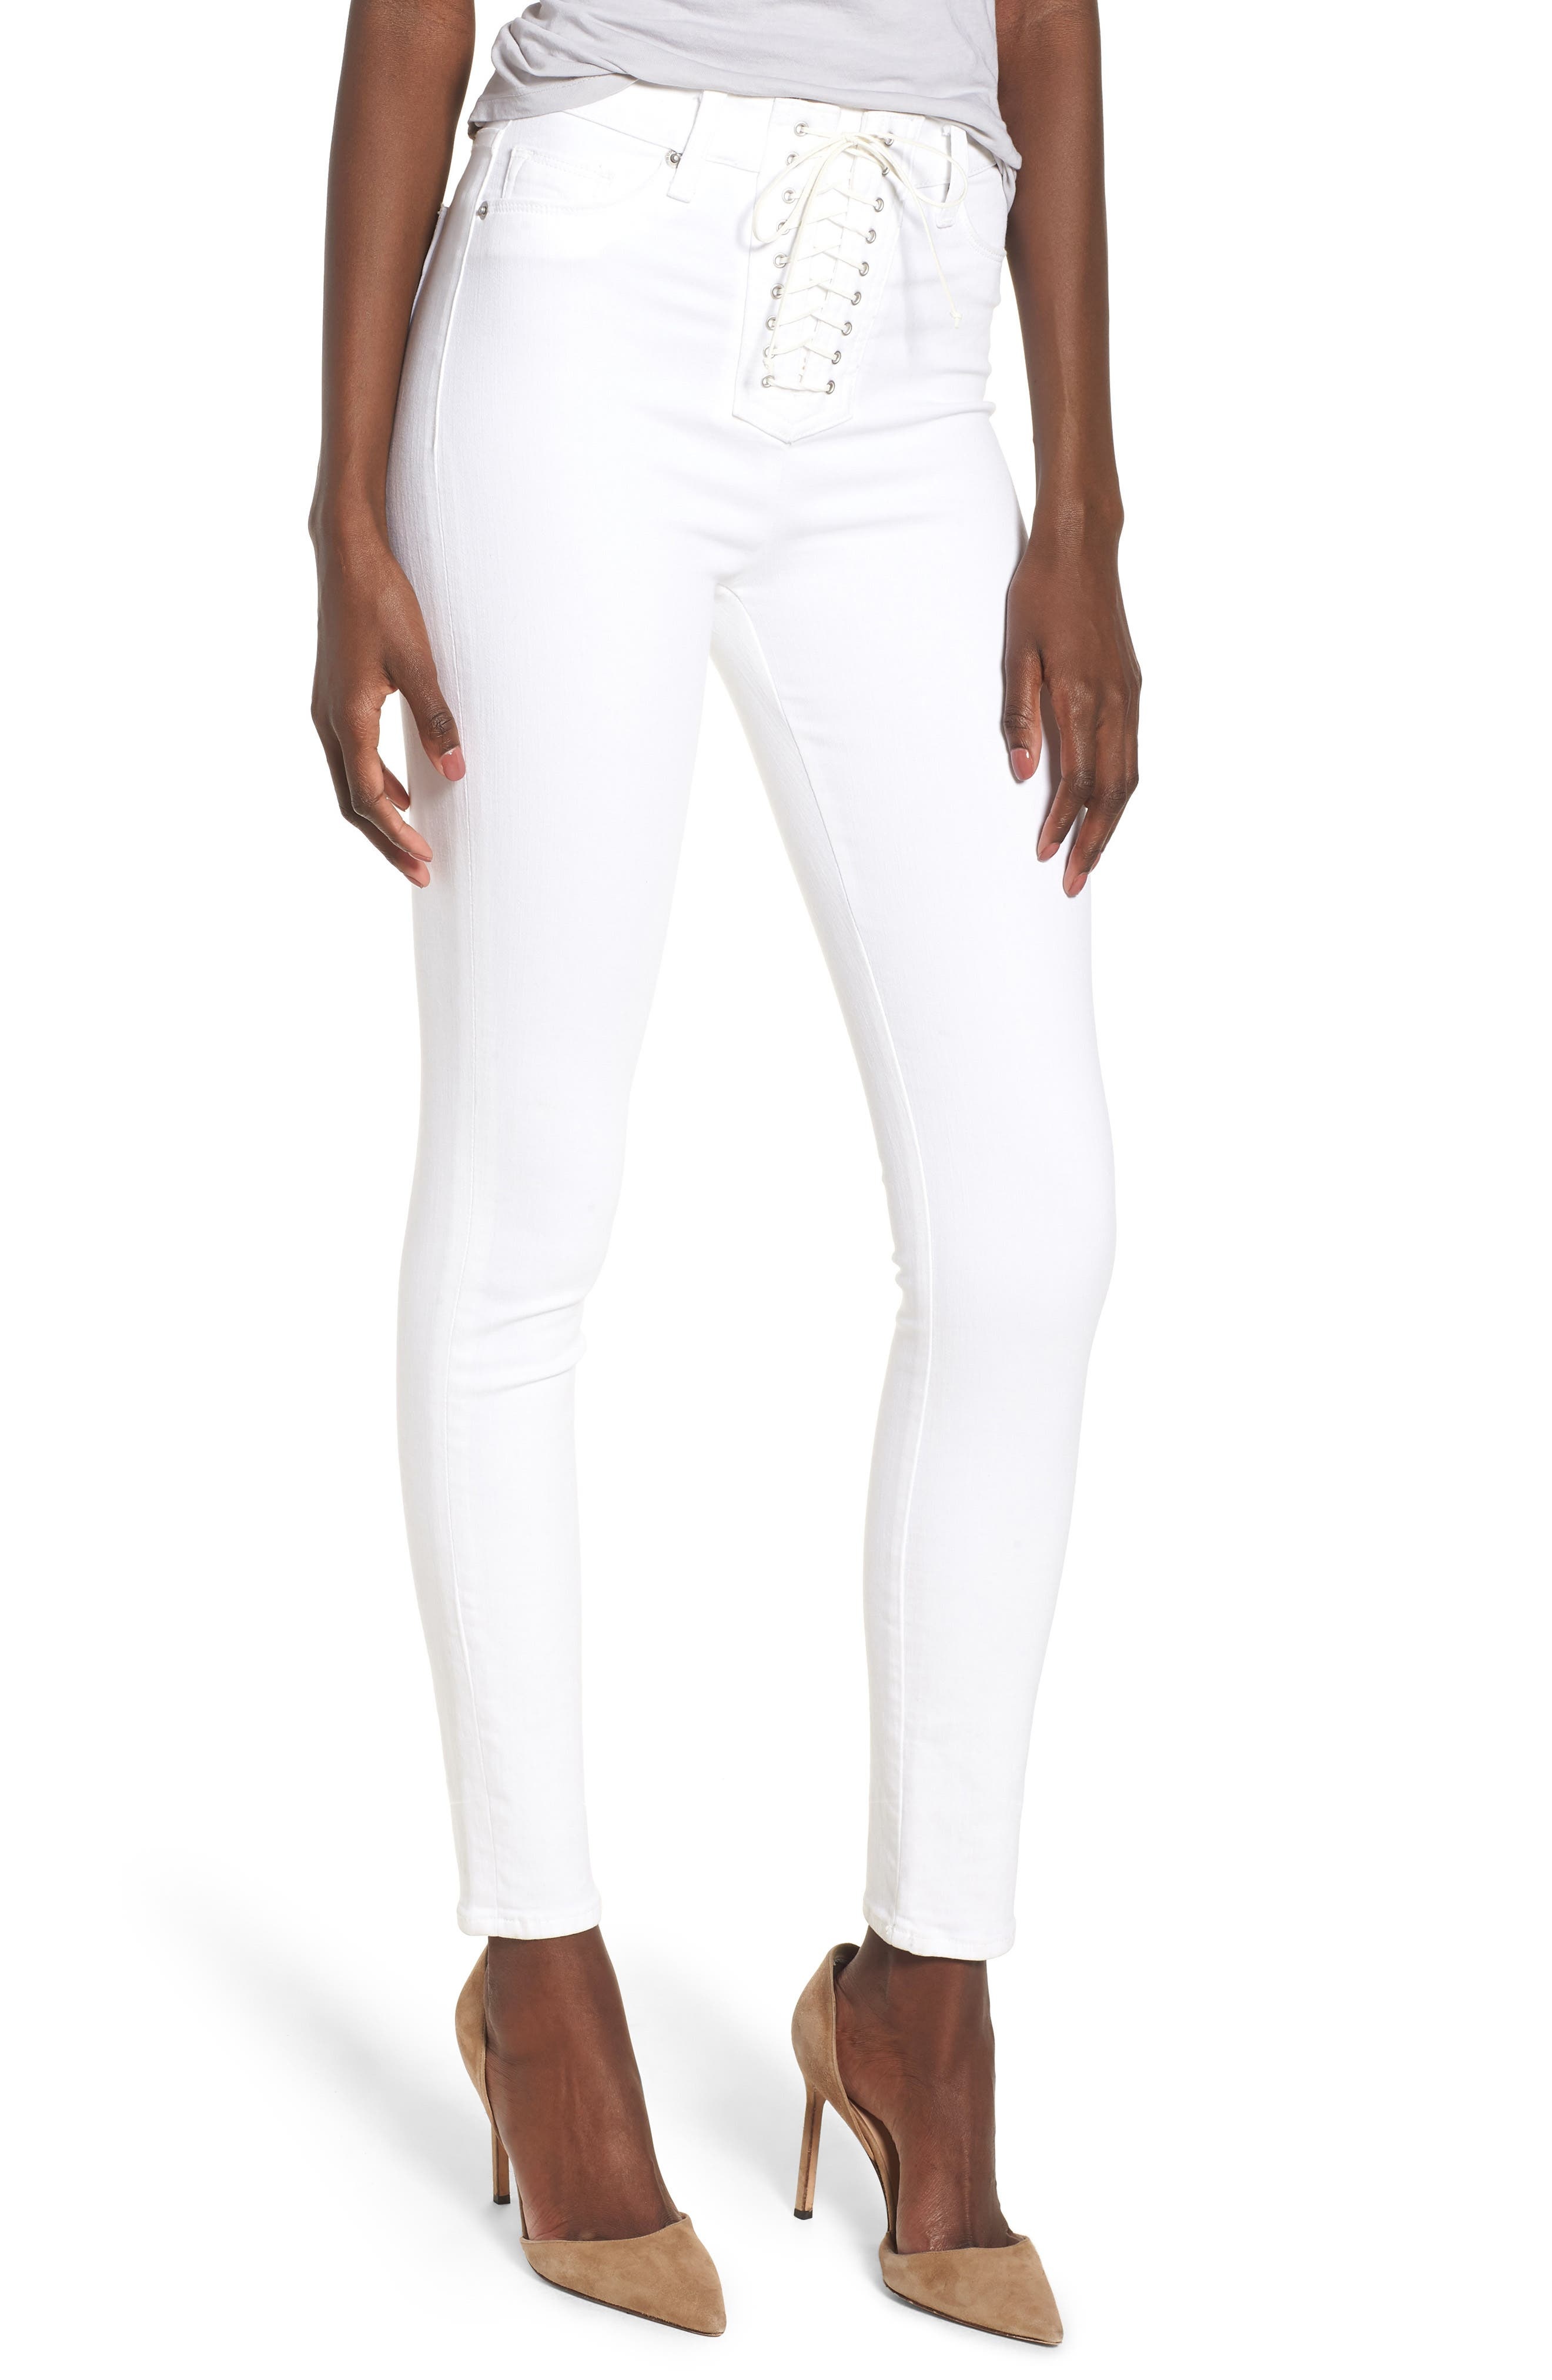 Bullocks Lace-Up High Waist Super Skinny Jeans,                             Main thumbnail 1, color,                             Optical White